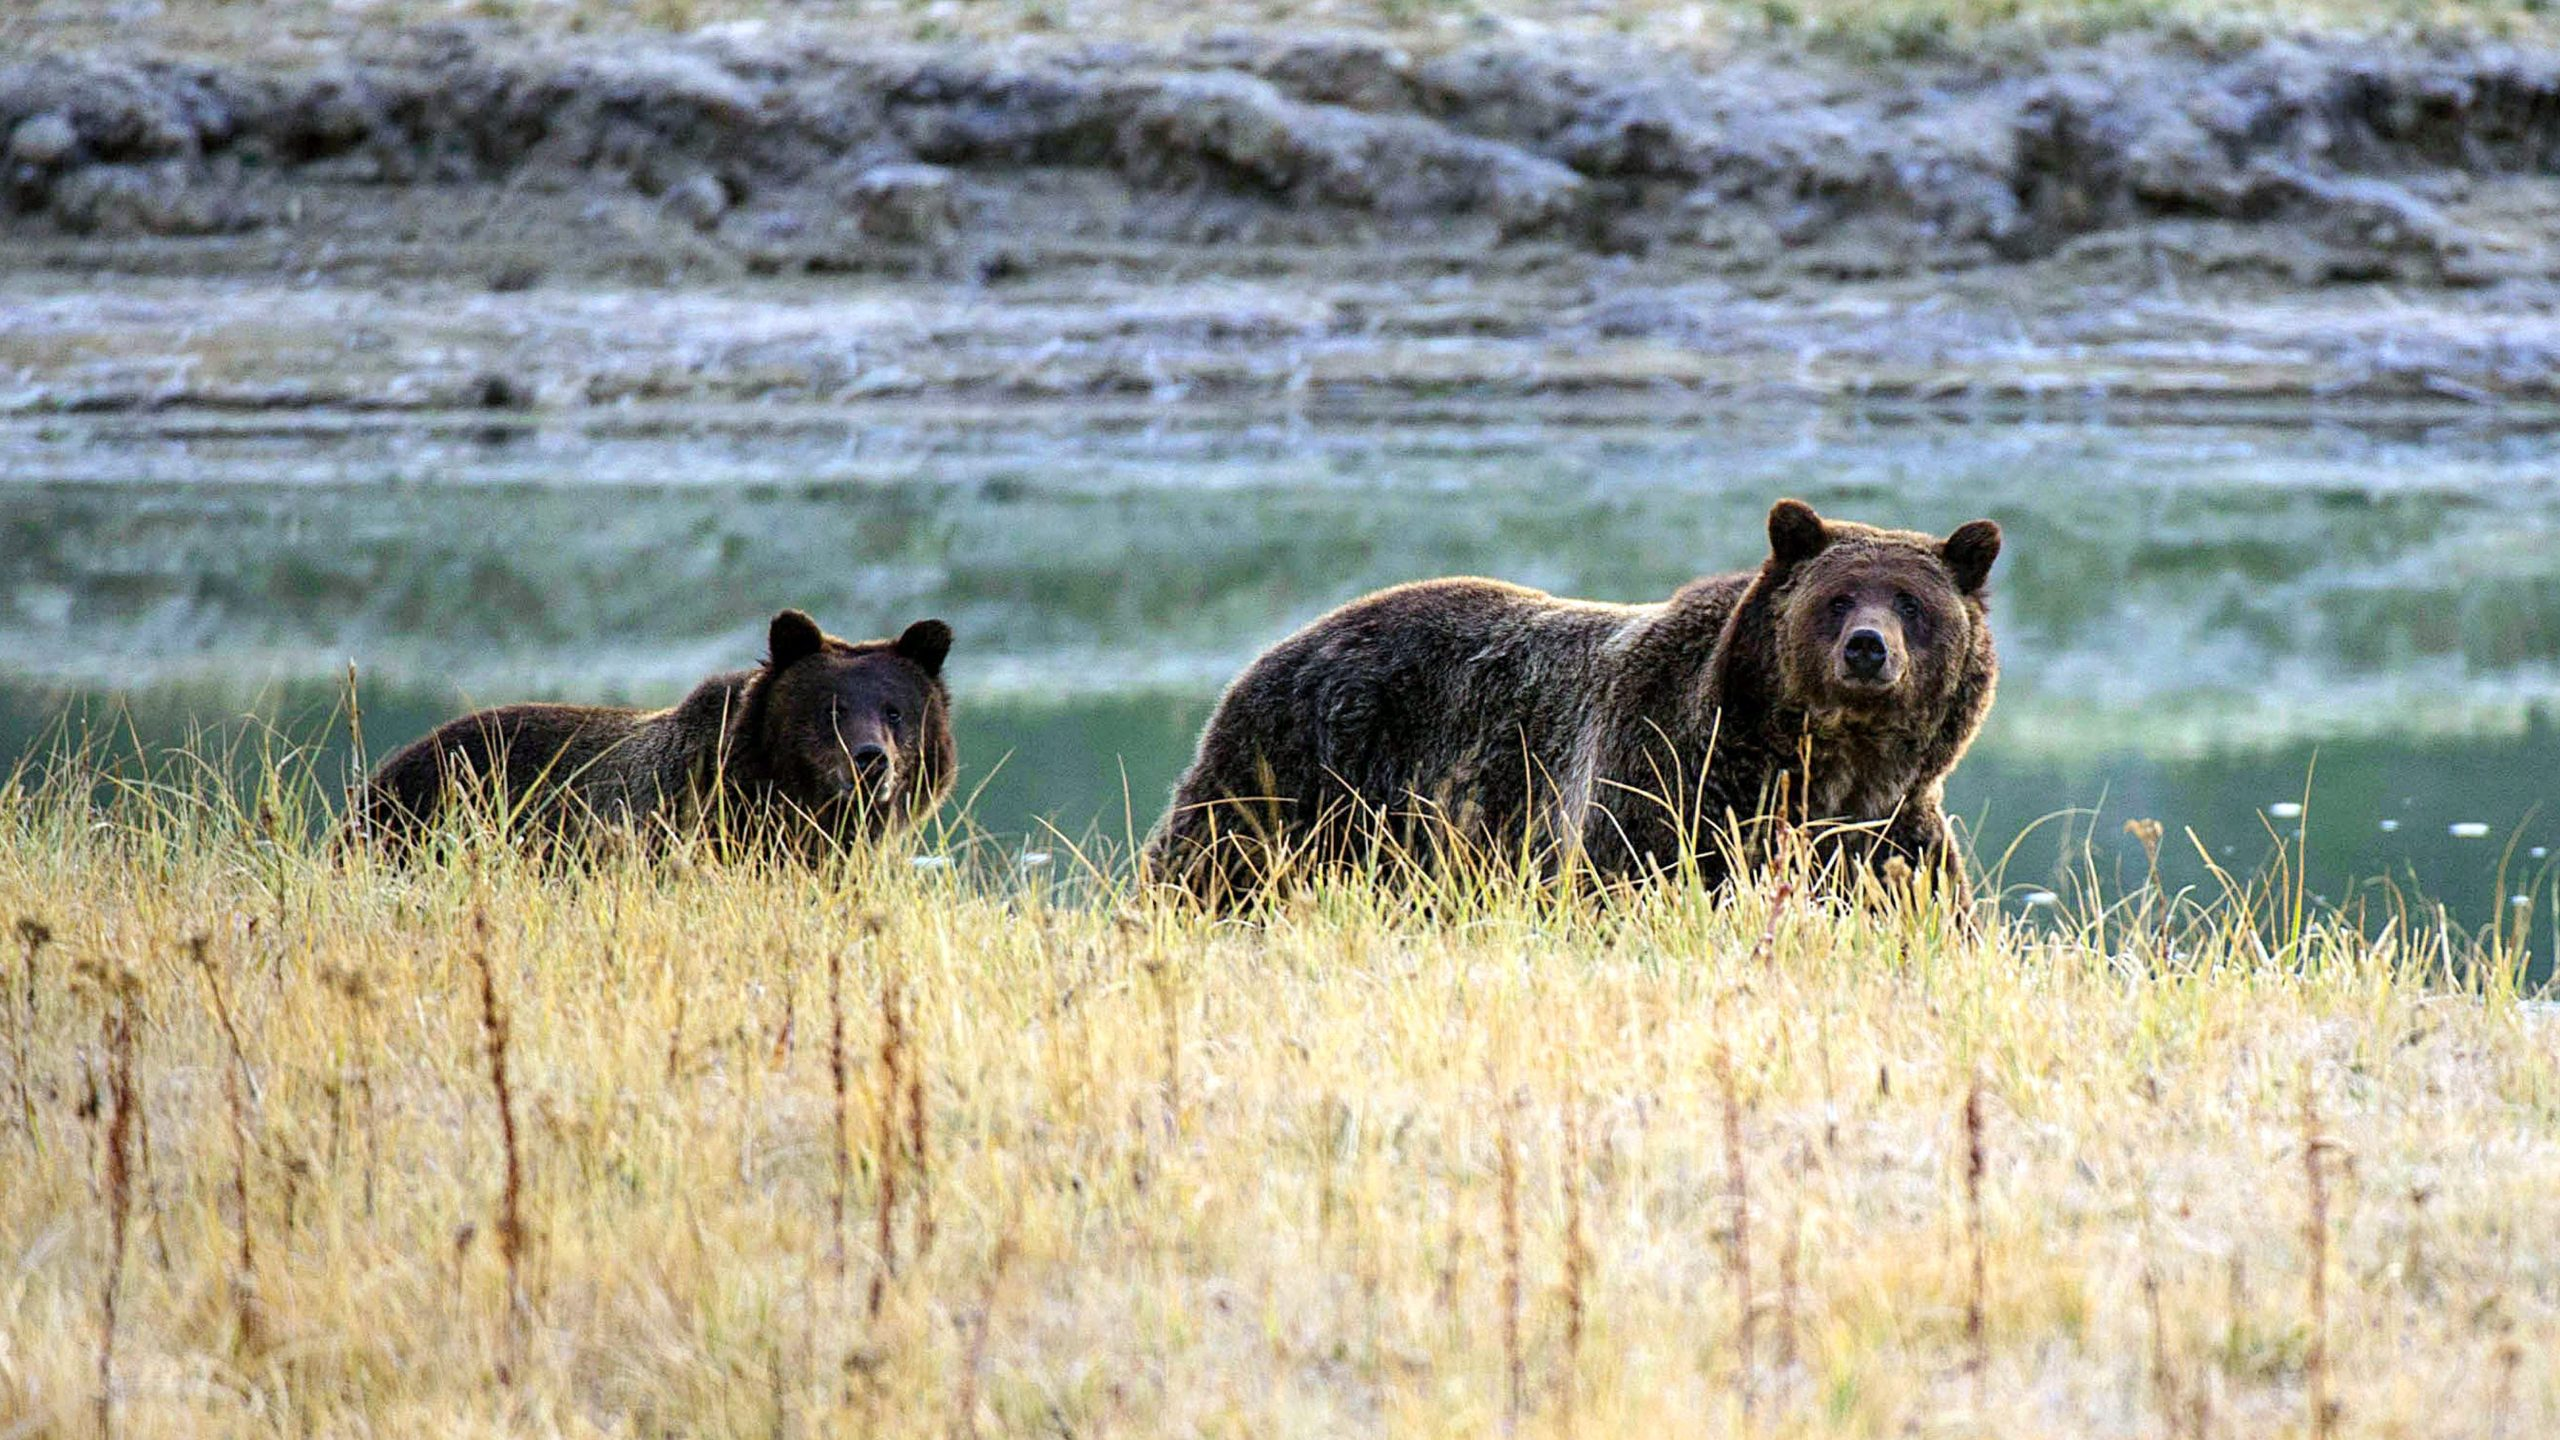 Grizzly bear kills camper in western Montana